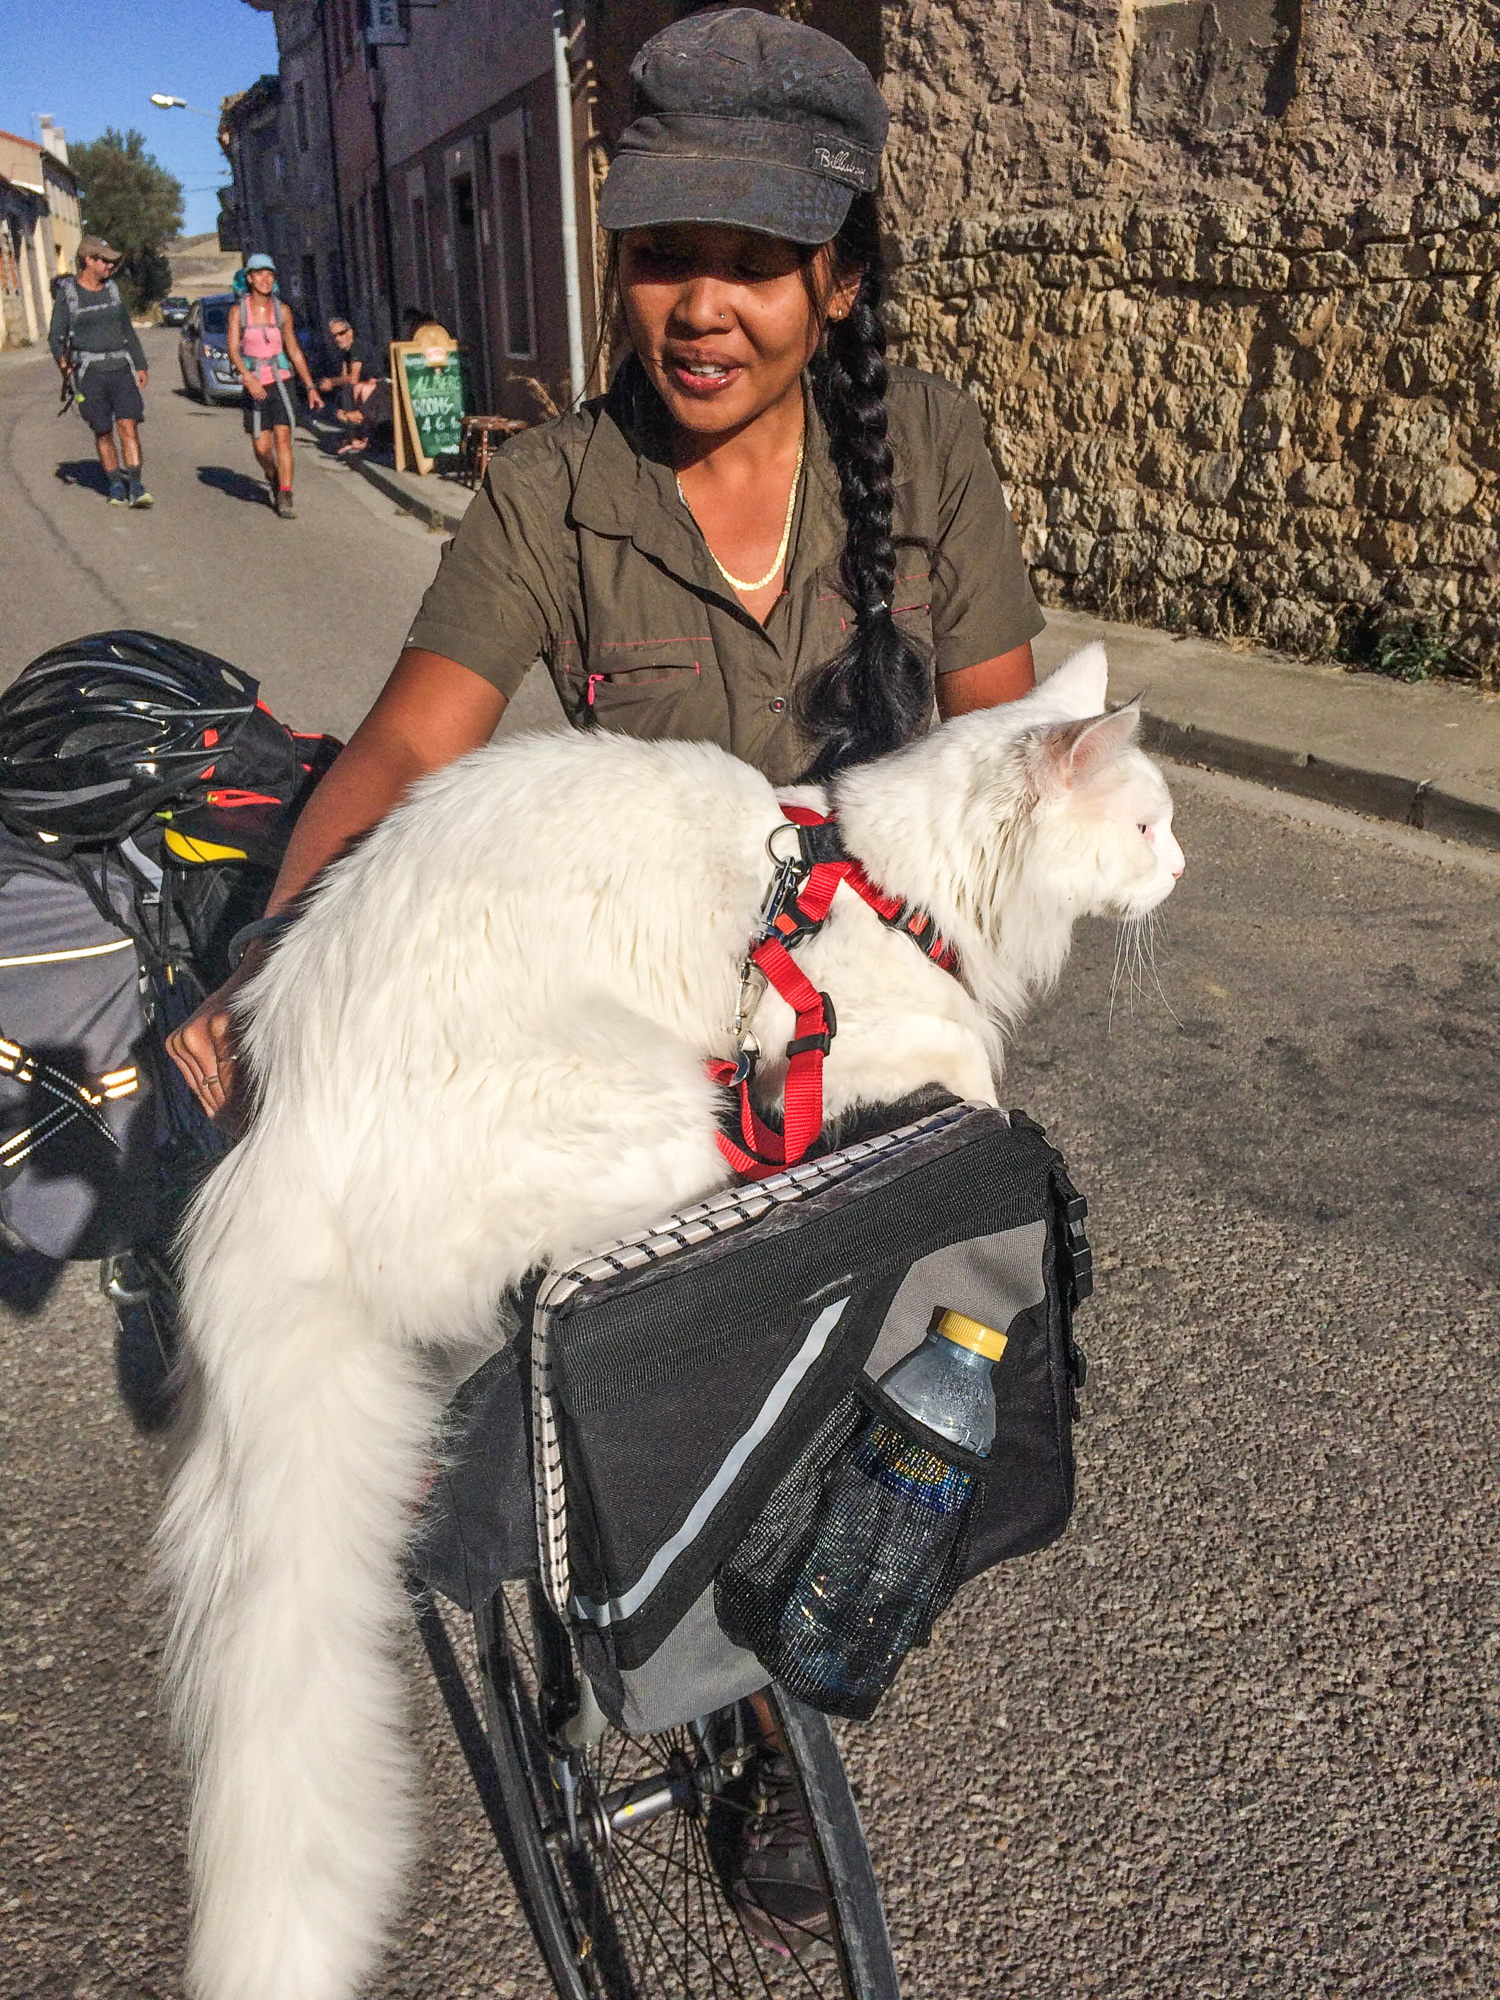 Cezar has taken many bike rides with his owner, Carla. (Photo: Instagram/@cezars.crew)